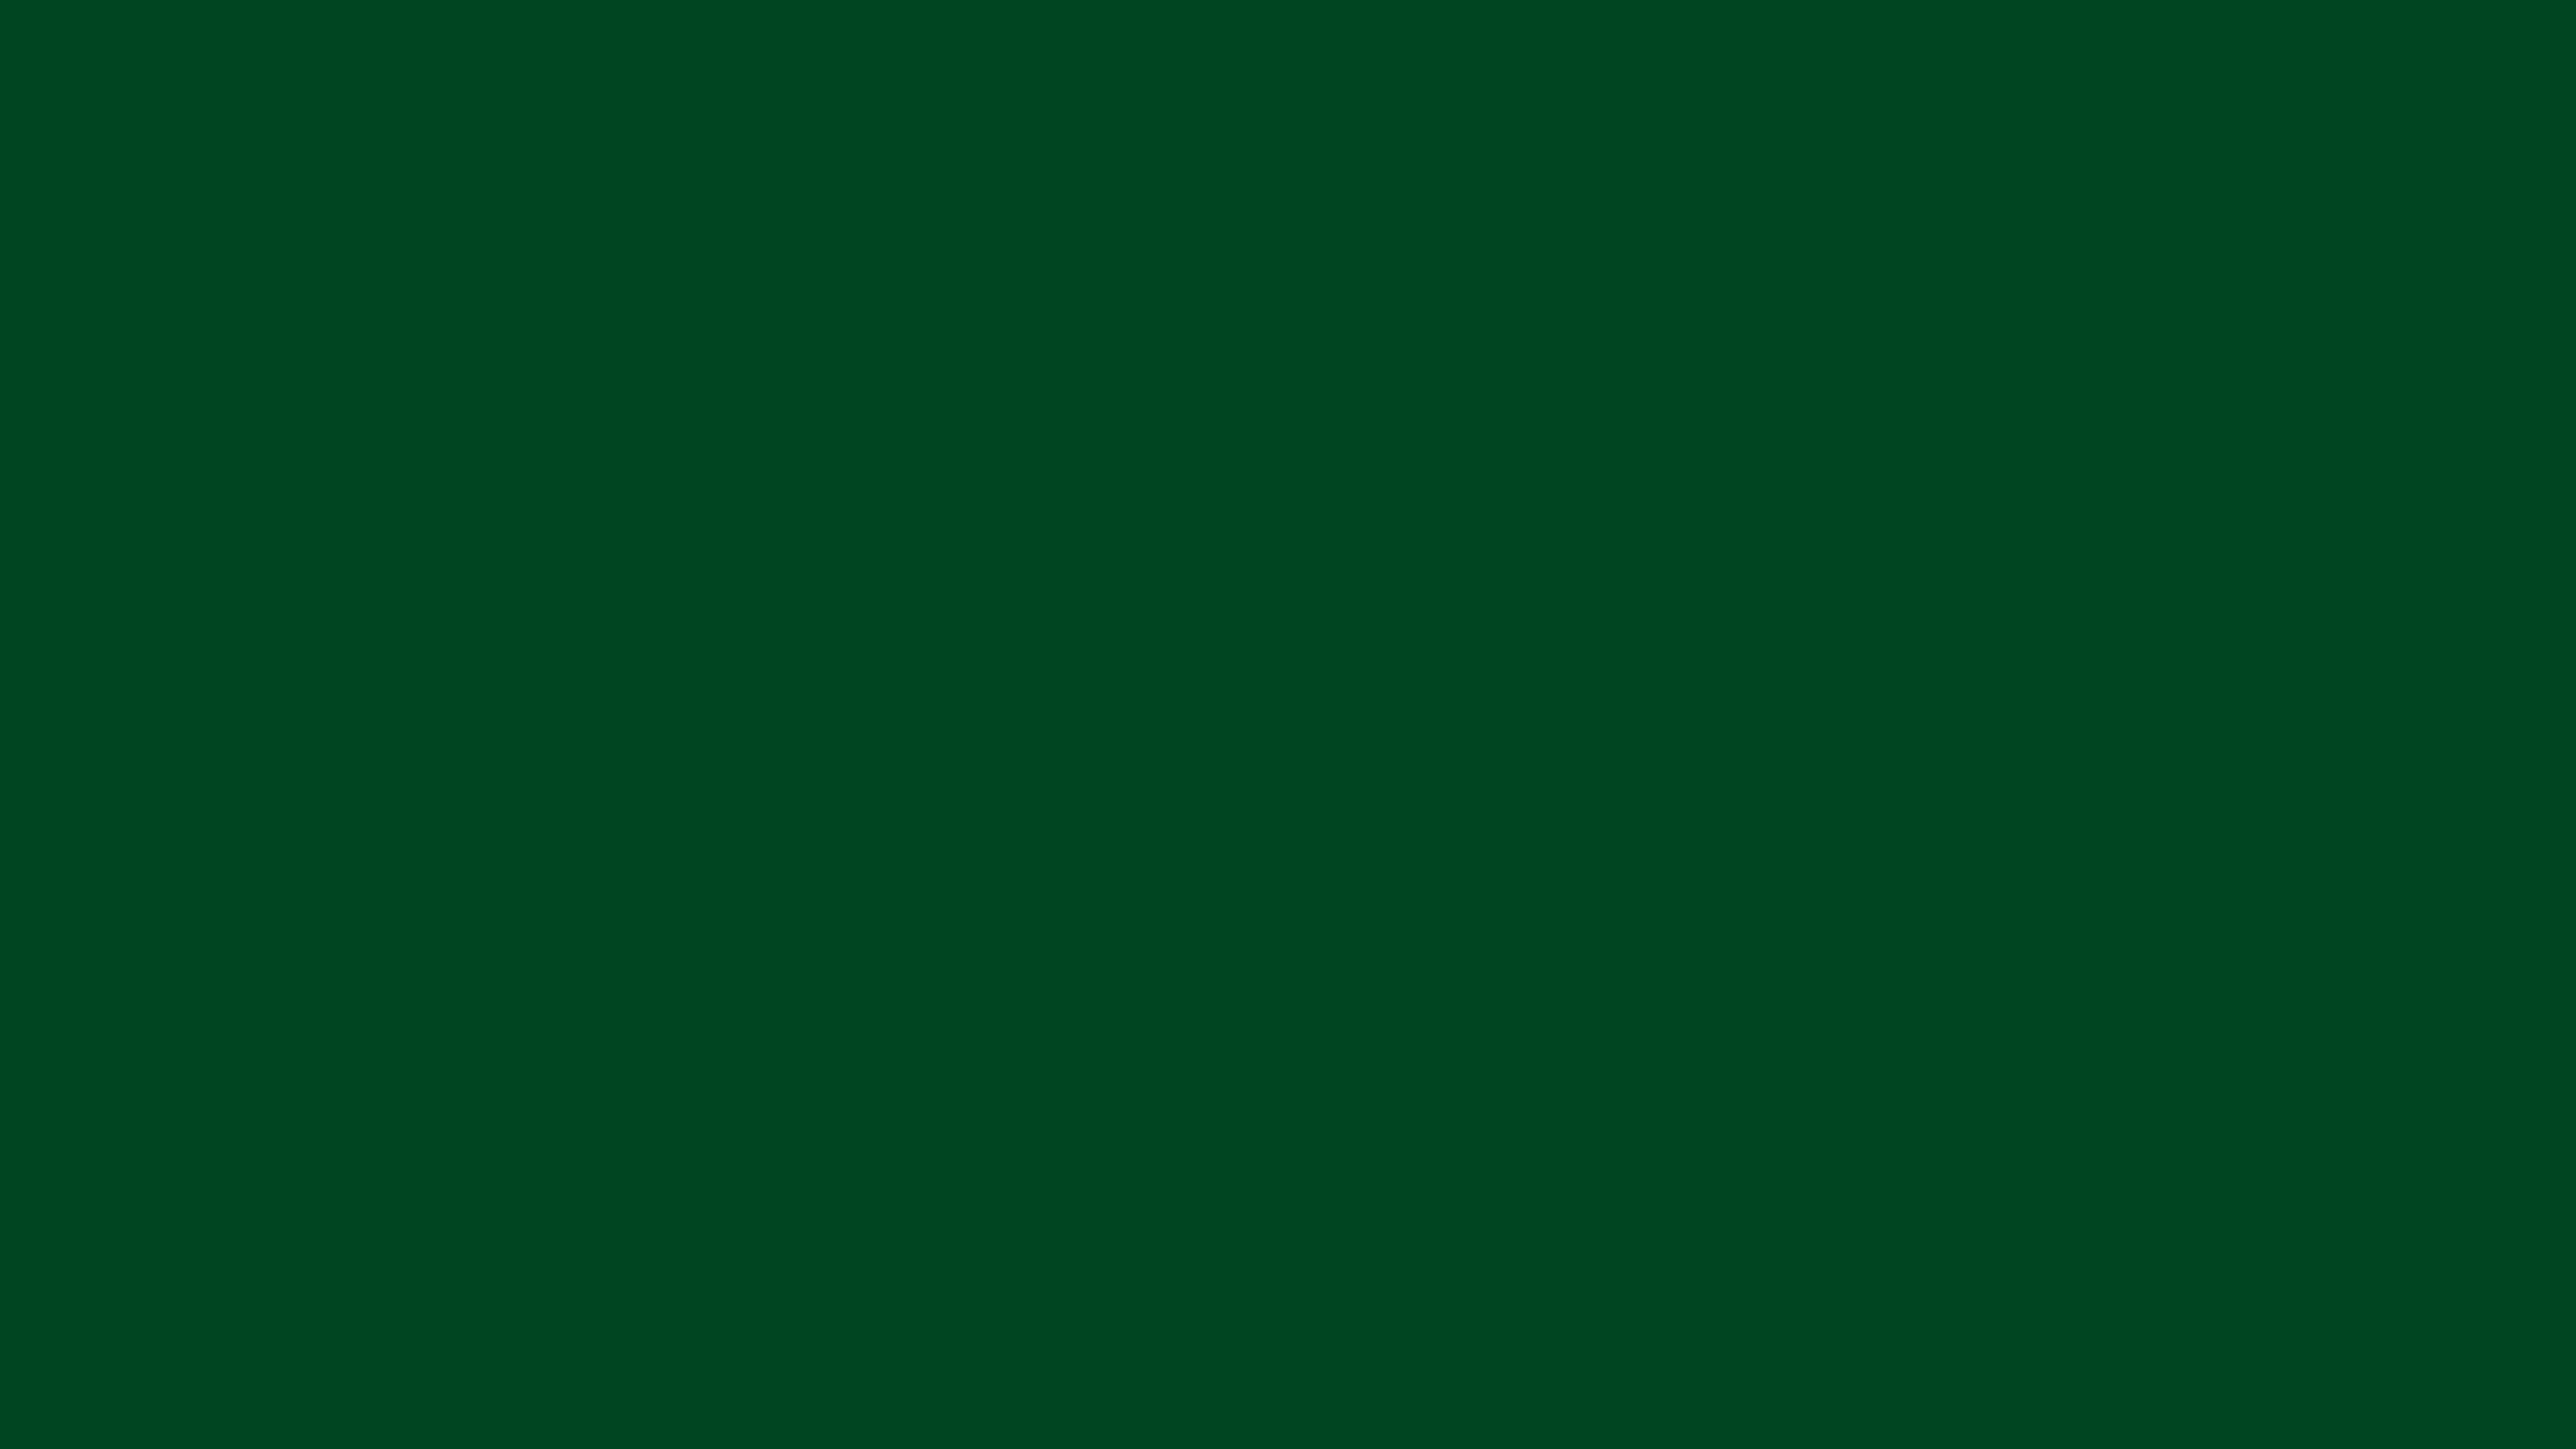 4096x2304 Forest Green Traditional Solid Color Background